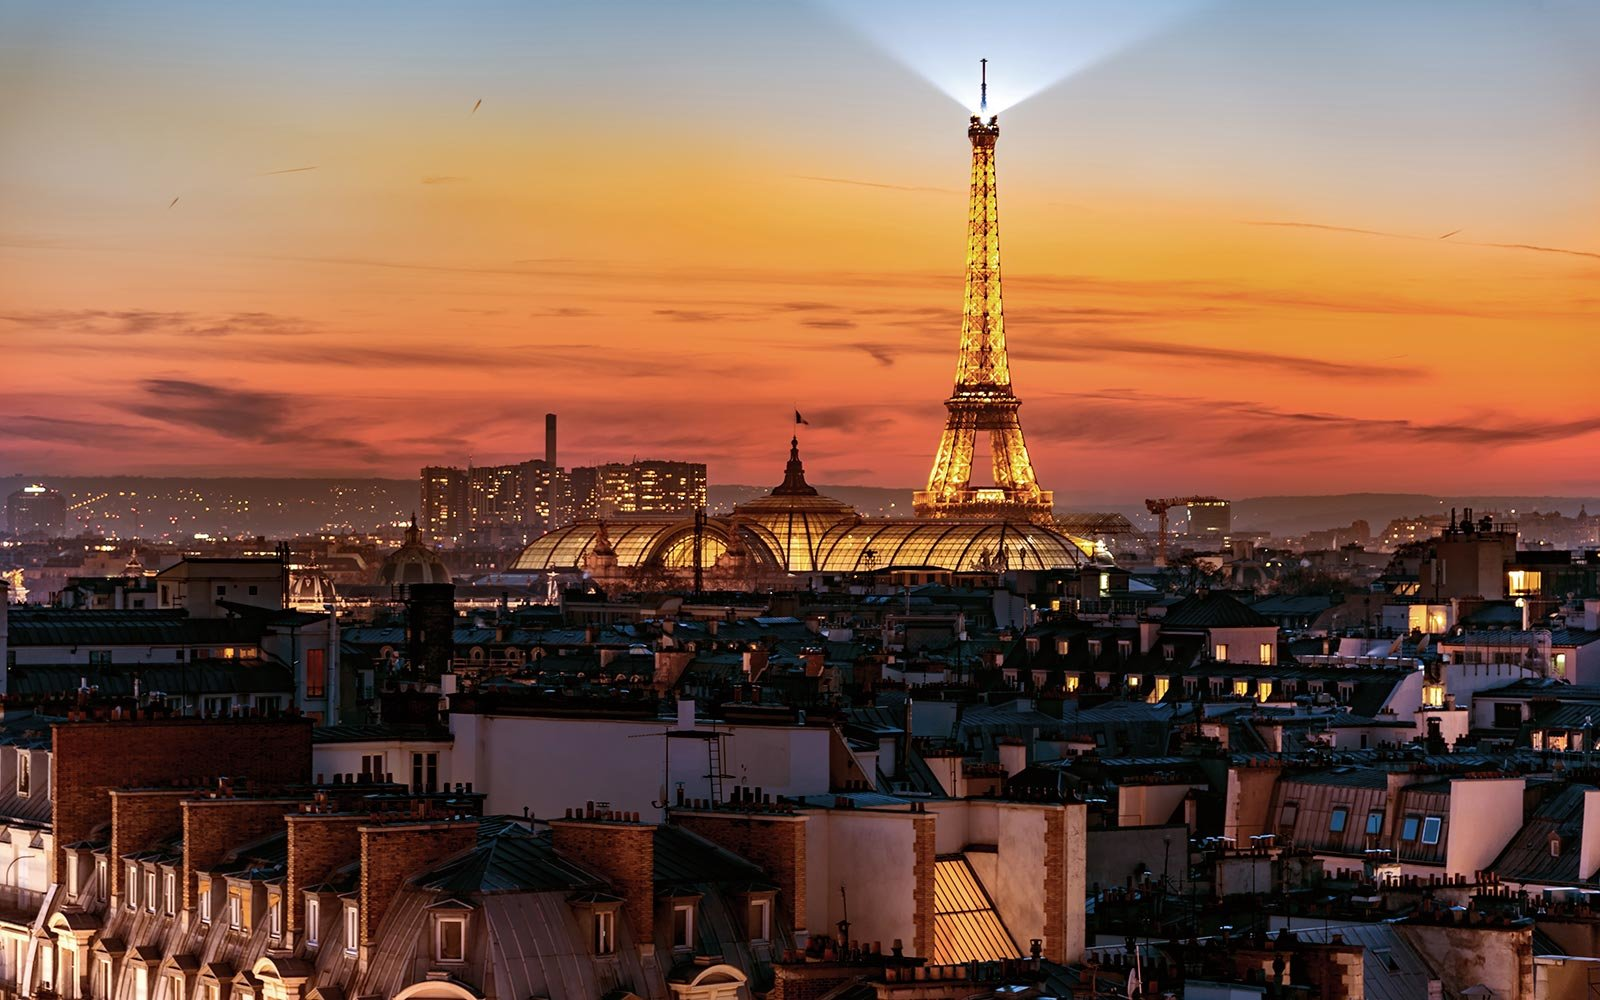 Eiffel Tower Landmark Paris France Sunset View